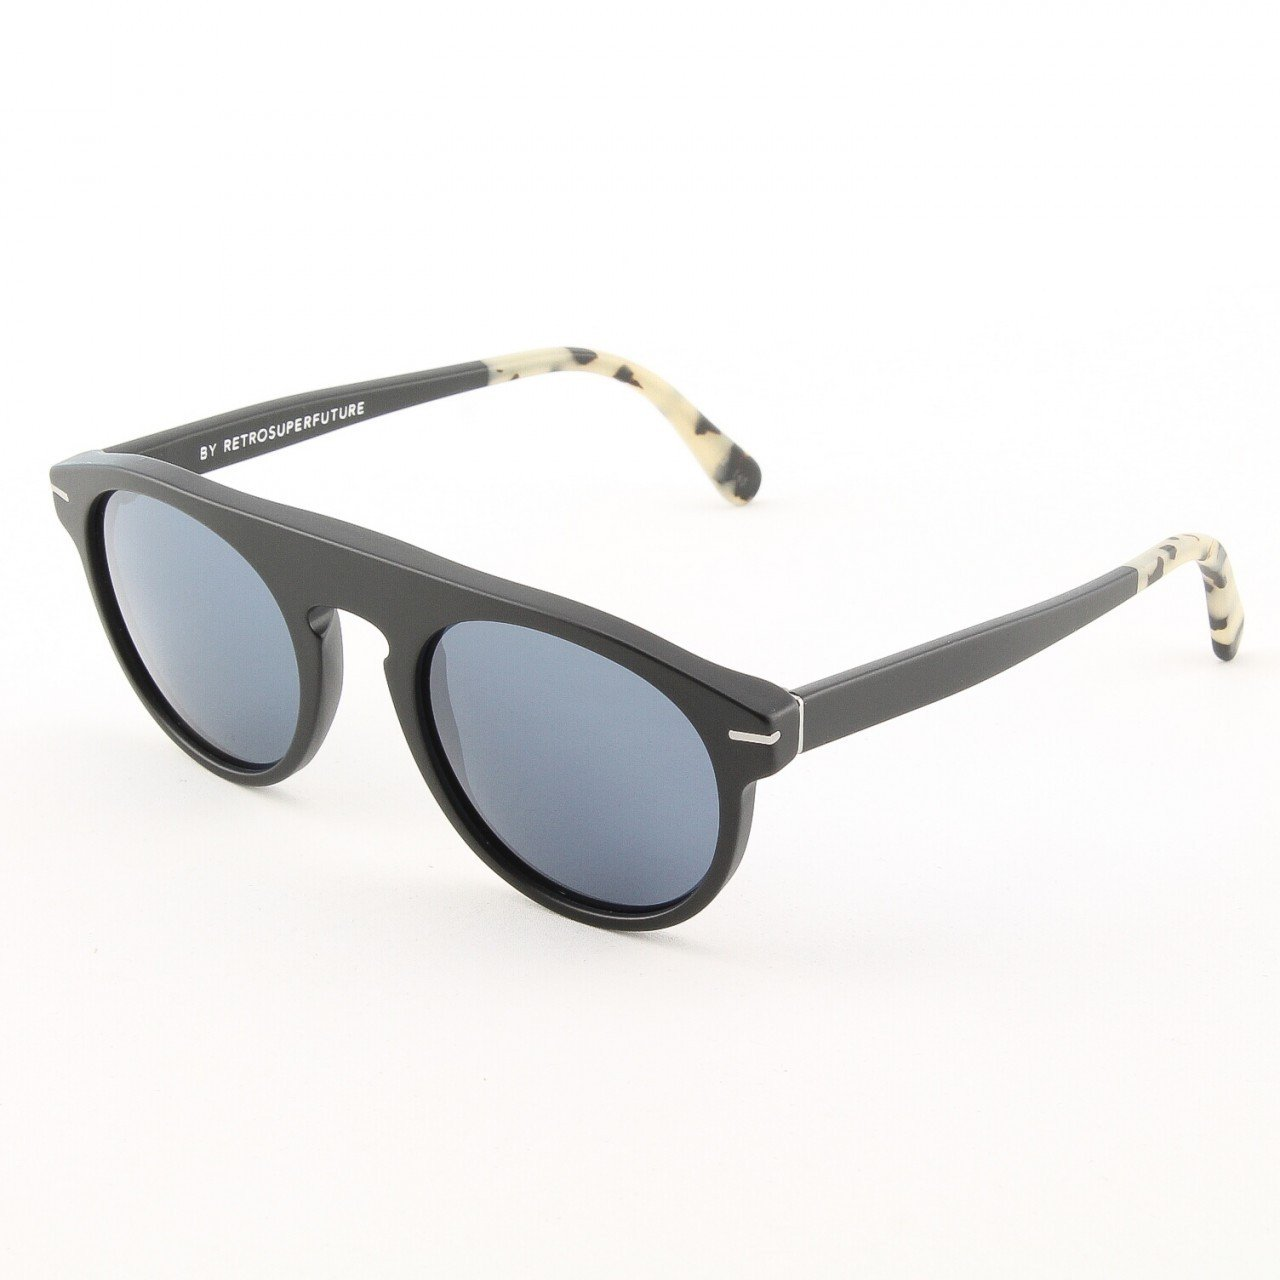 Super Racer 908/3T Sunglasses Color Puma Black Marble Pattern by RETROSUPERFUTURE